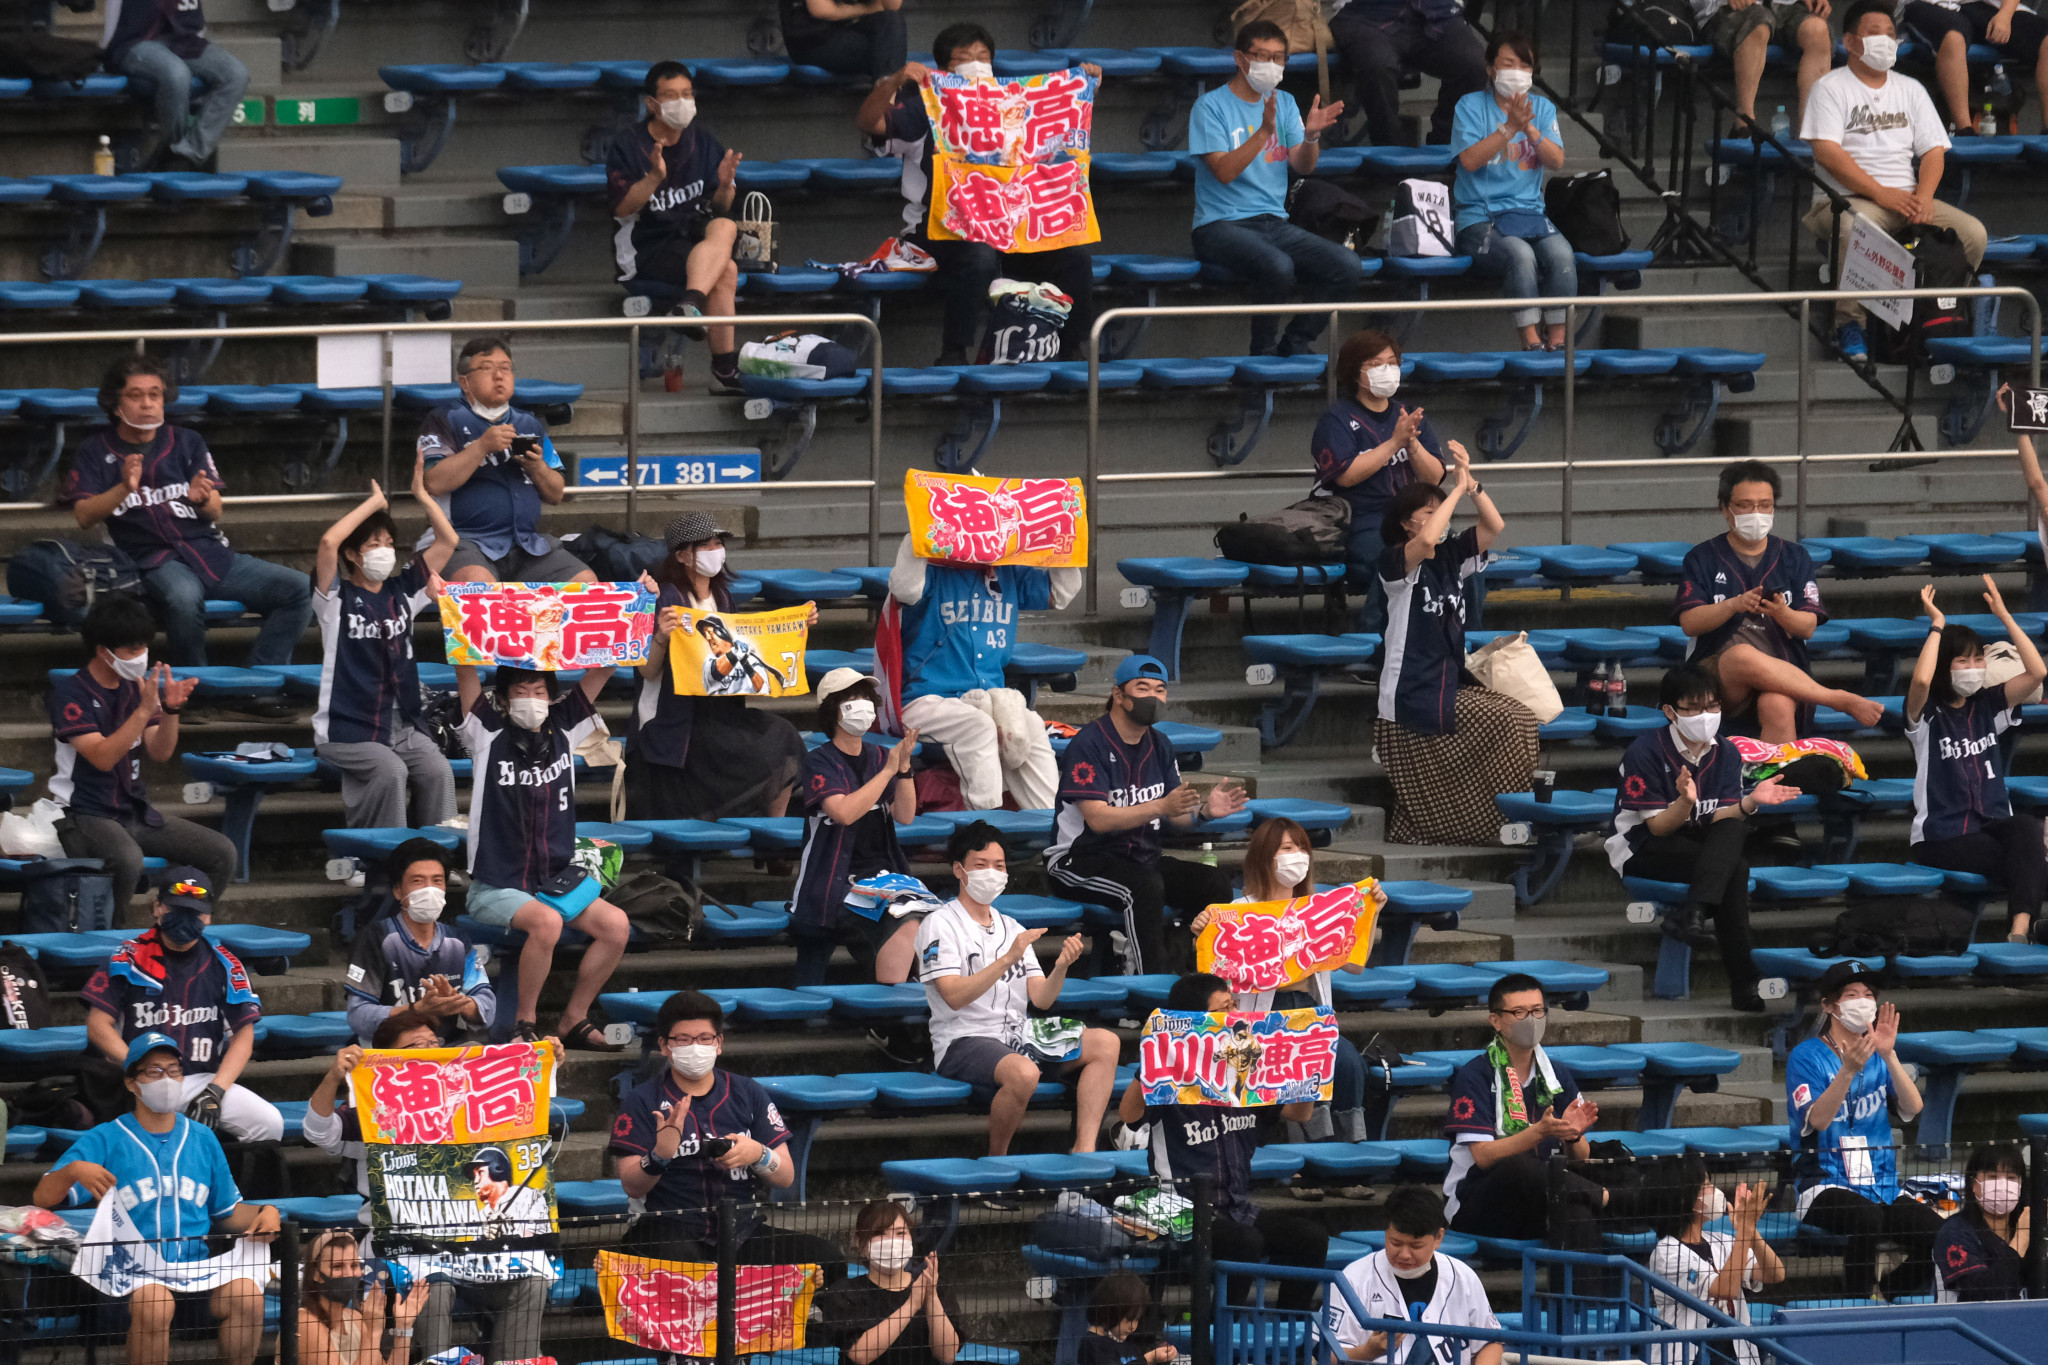 More than 10,000 spectators attend baseball and football matches as Japan eases capacity restrictions